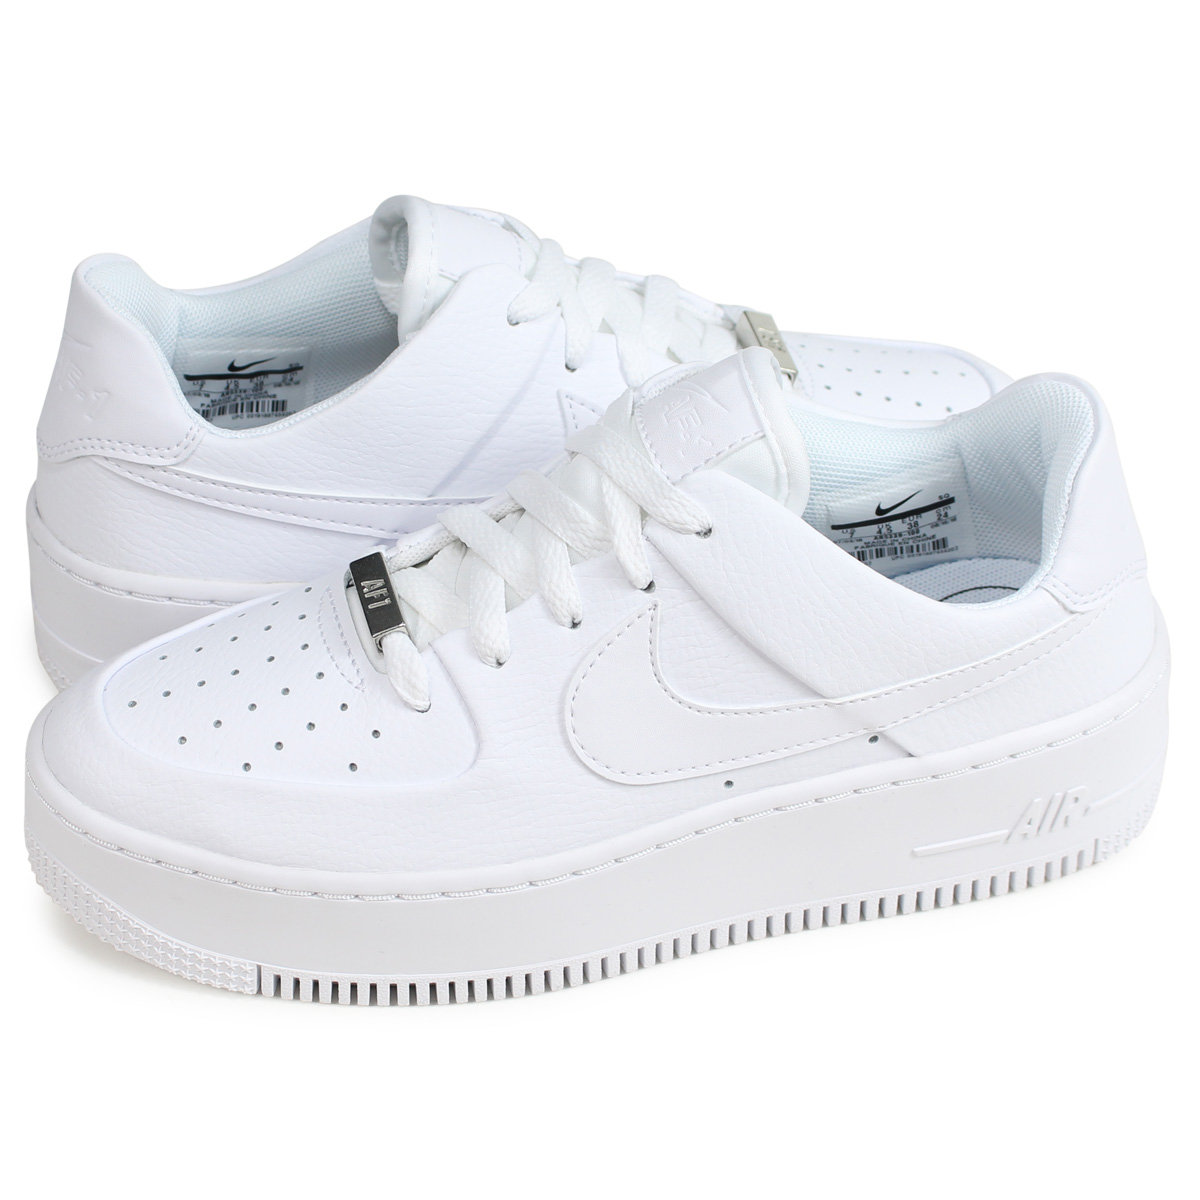 Nike NIKE air force 1 sneakers Lady's WMNS AIR FORCE 1 SAGE LOW AF1 white white AR5339 100 [110 reentry load]